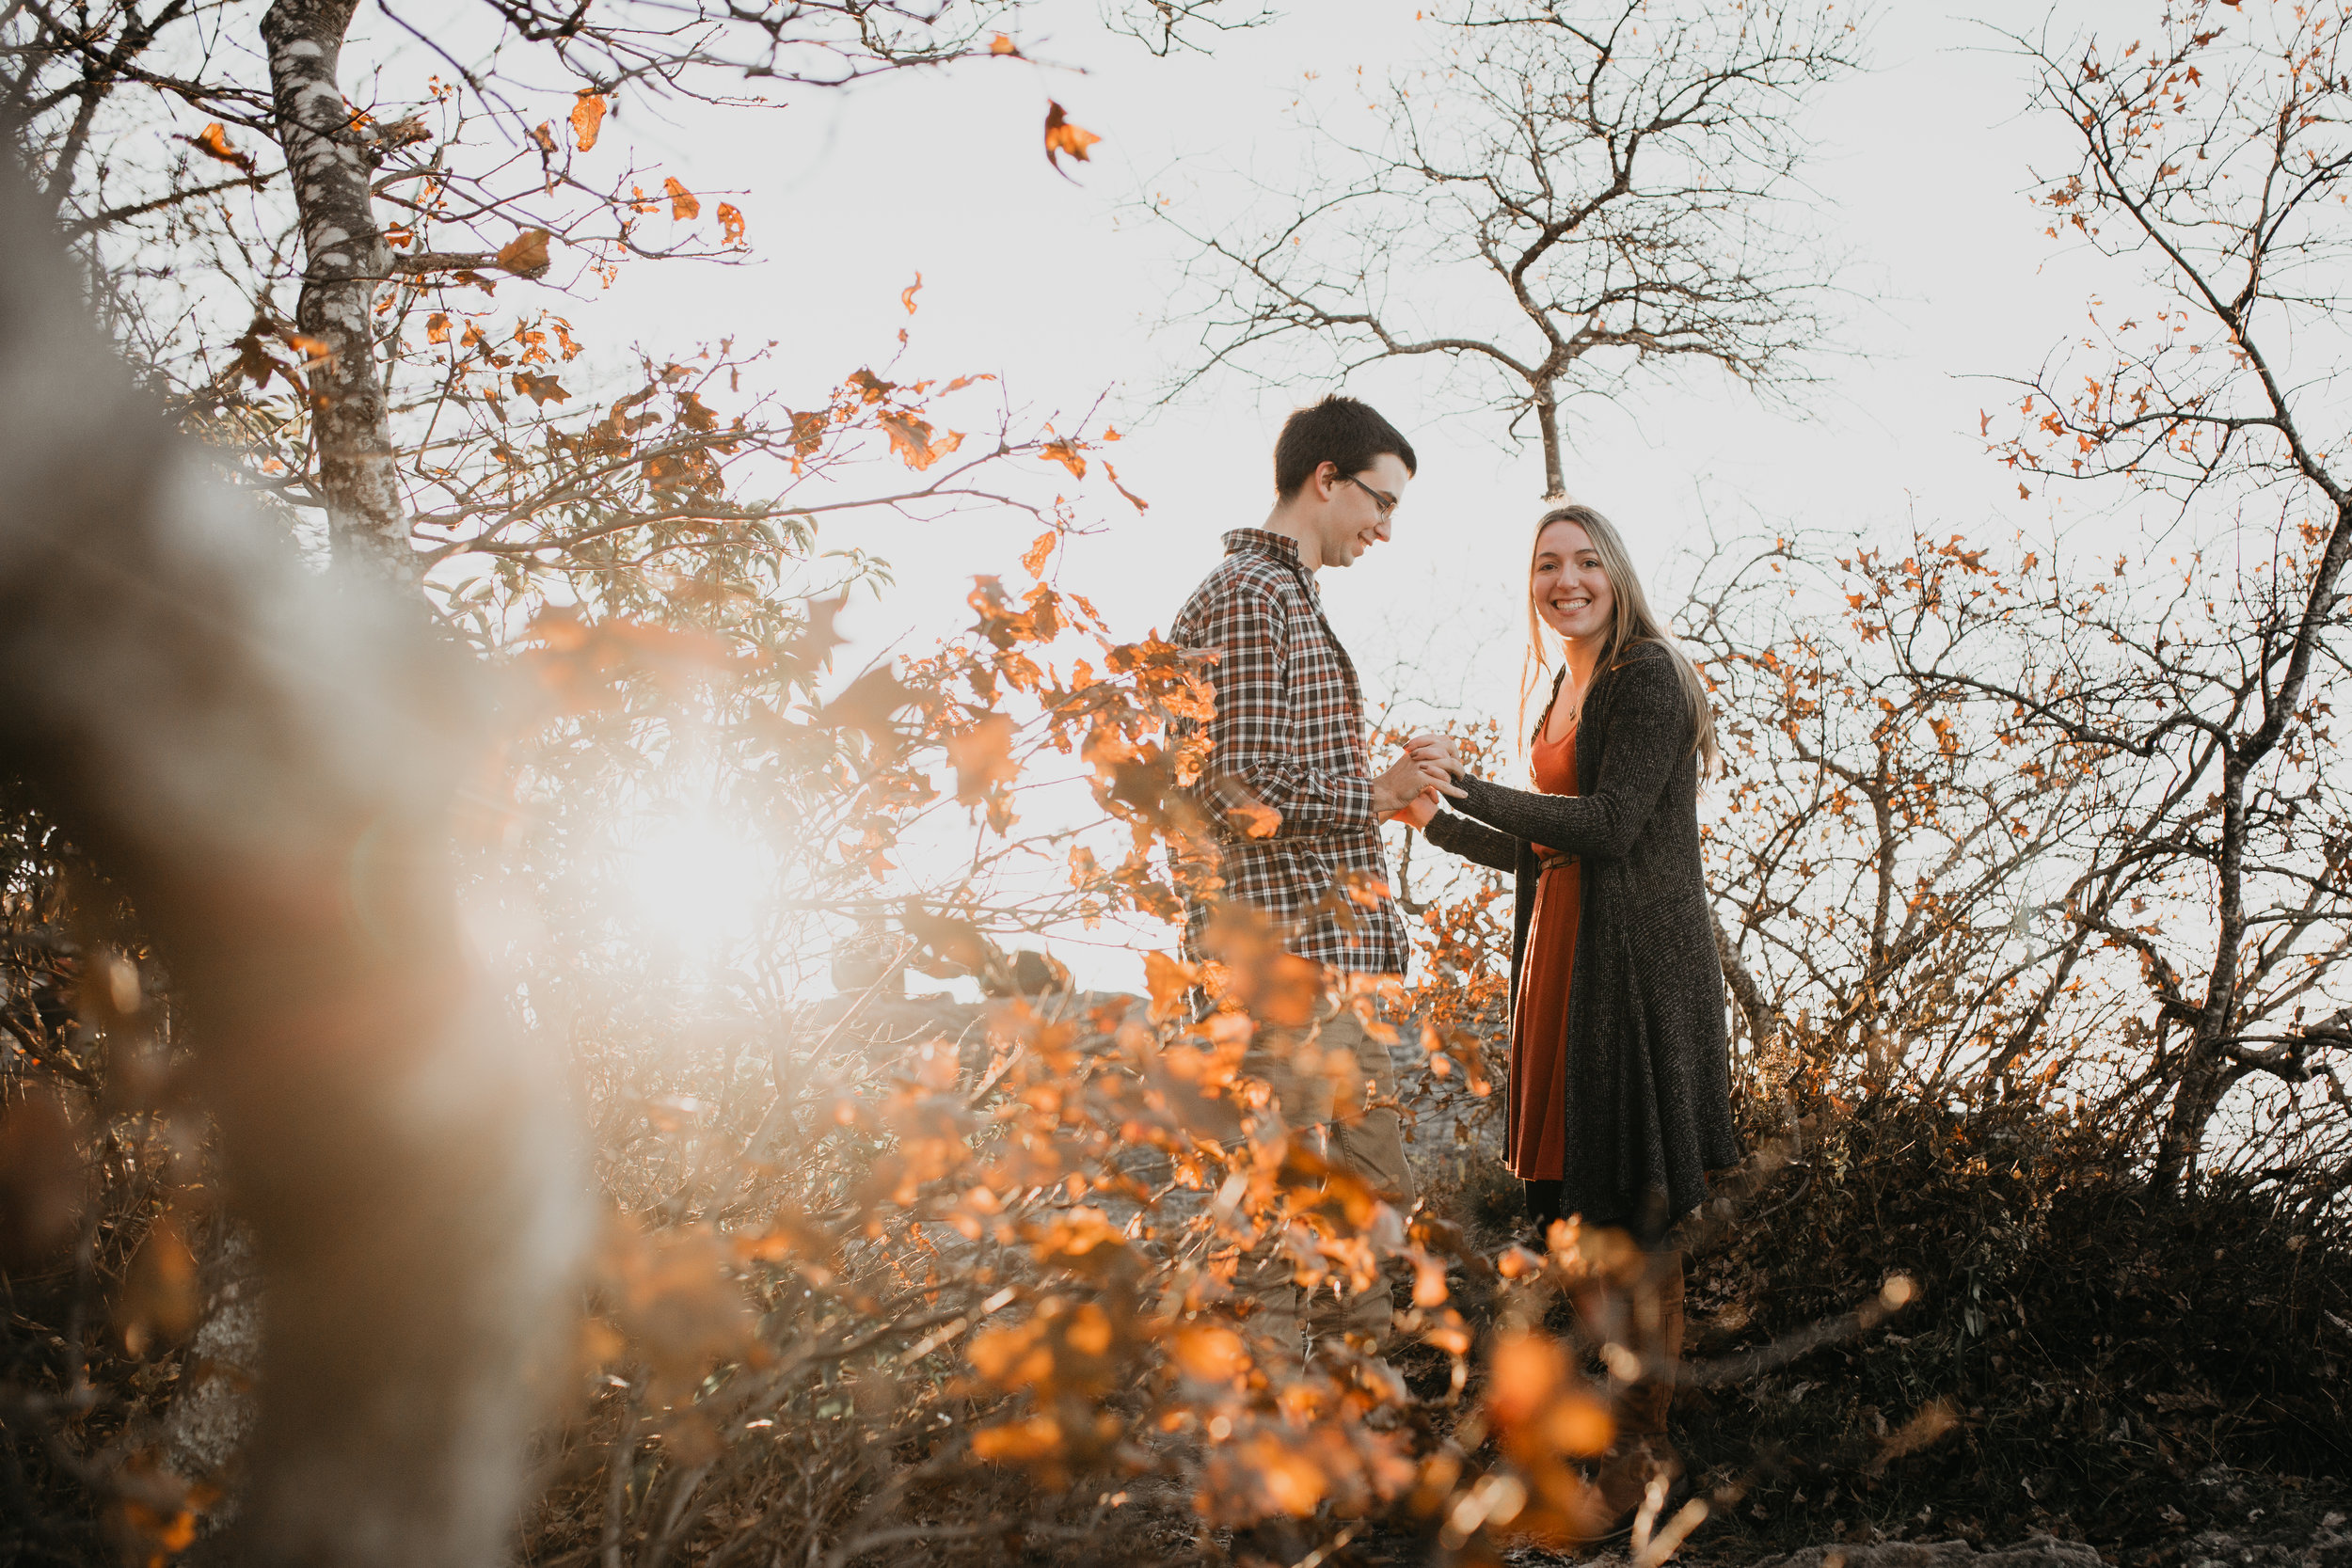 nicole-daacke-photography-shenandoah-national-park-adventure-engagement-session-with-fall-foliage-shenandoah-elopement-photographer-engagement-photos-in-virginia-charlottesville-national-park-adventure-elopement-photographer-3687.jpg